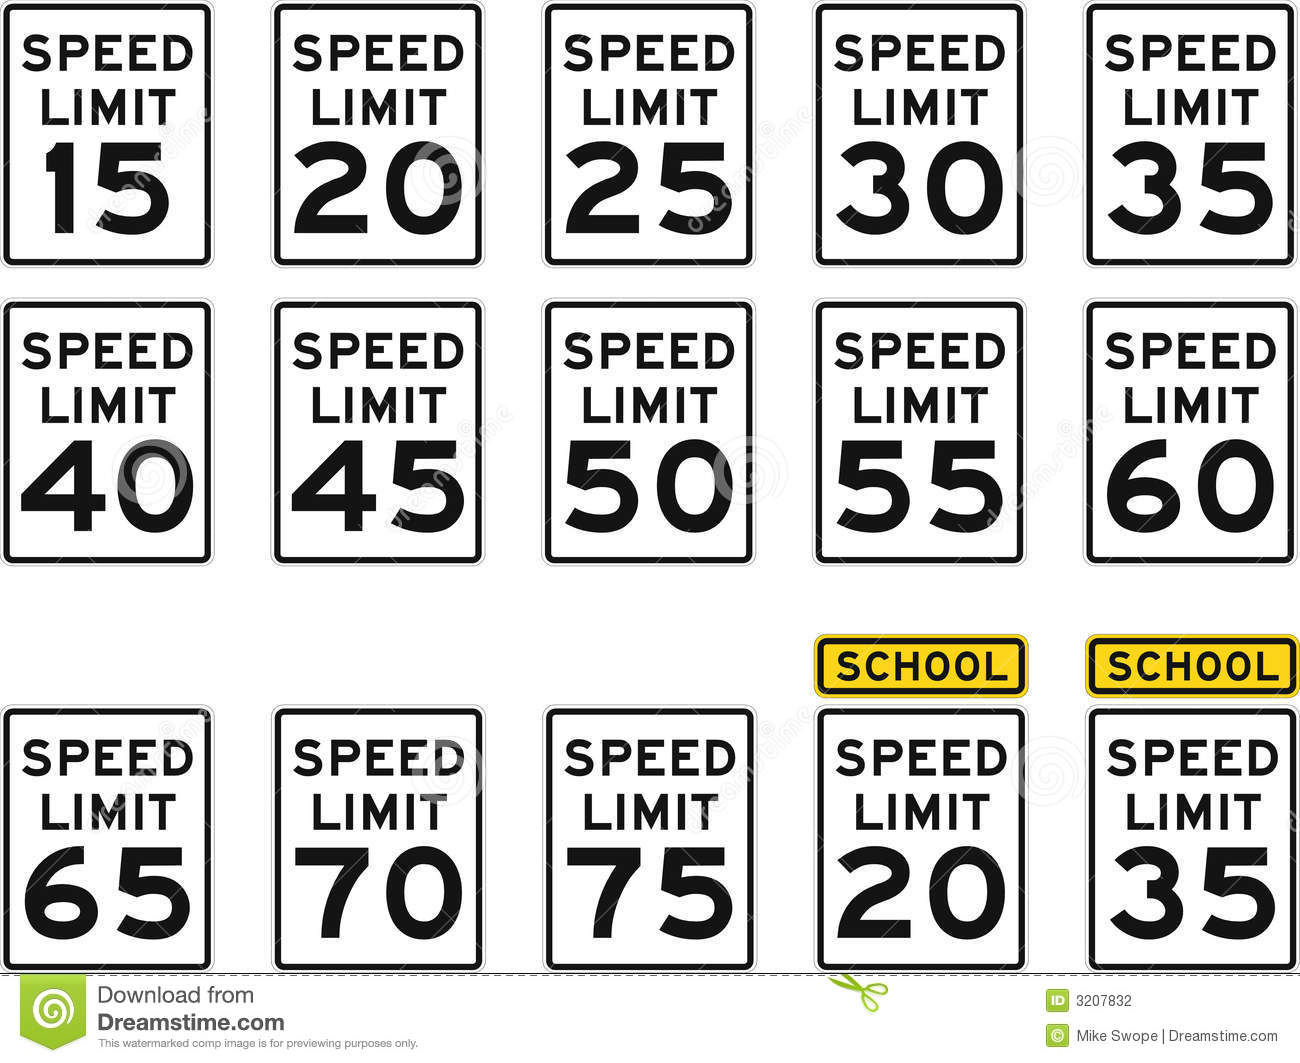 the speed limit Many cities are trying to make pedestrians and cyclists safer by lowering speed limits, but perplexingly, that can lead to an increase in fatalities.